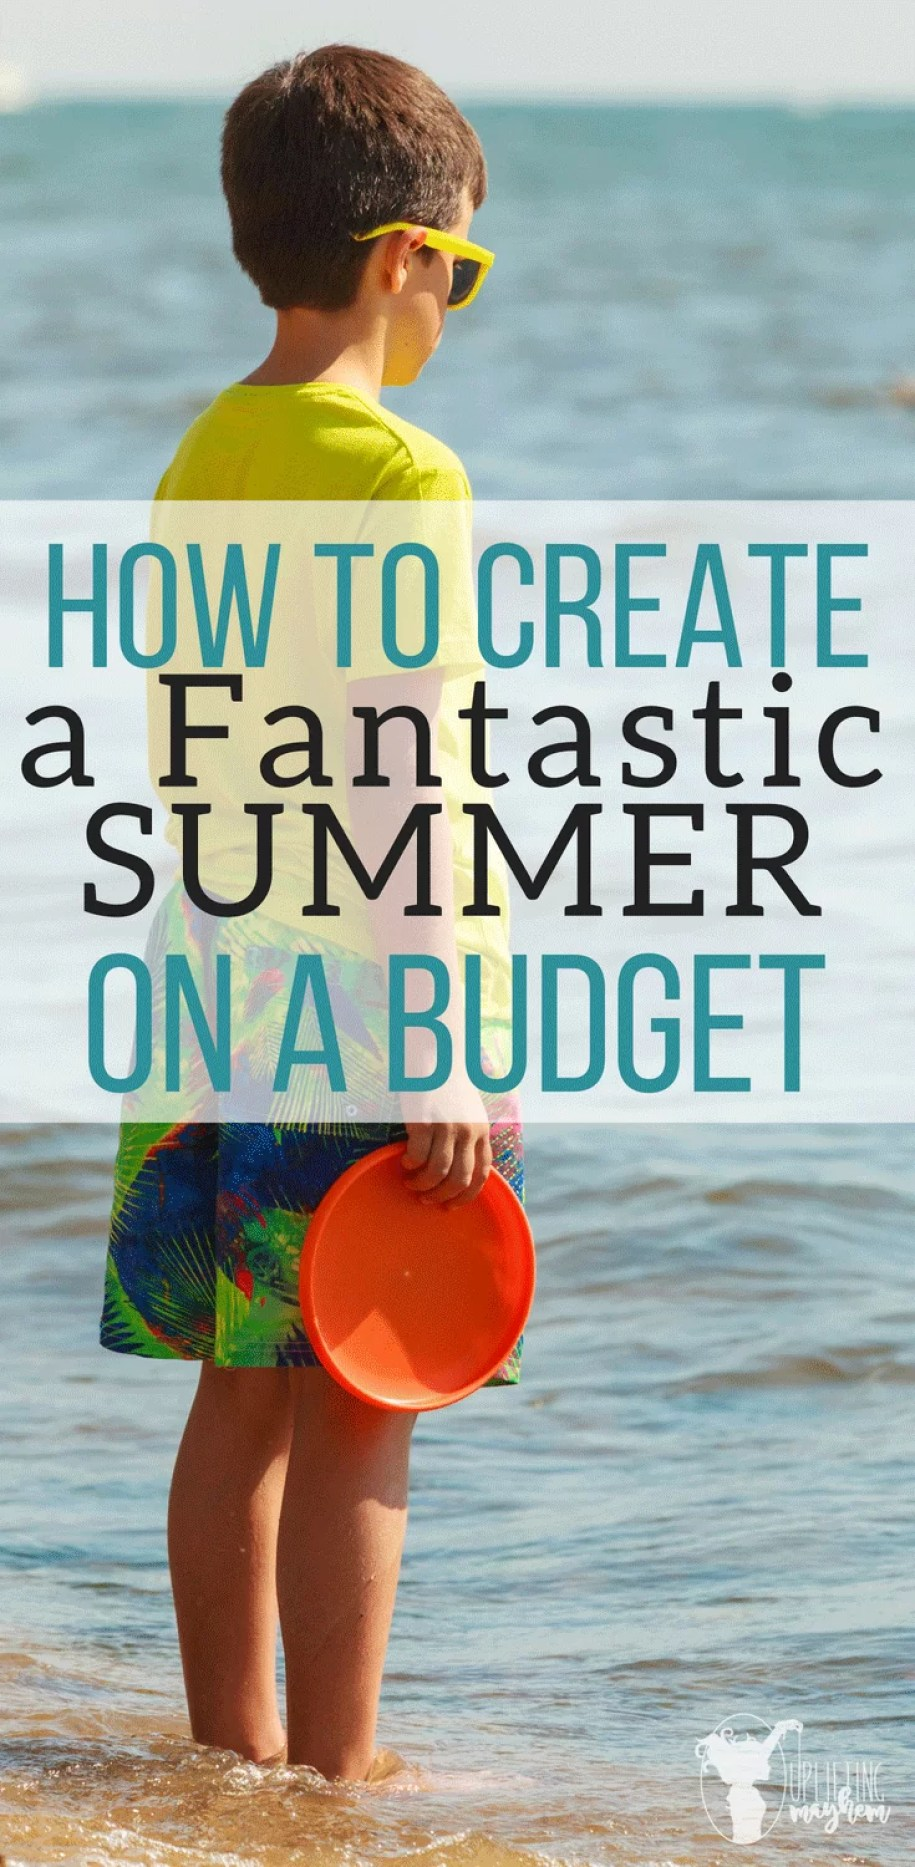 Are you on a budget and need some ideas for this summer? Check out these fun tips and activities for a summer your kids will love!